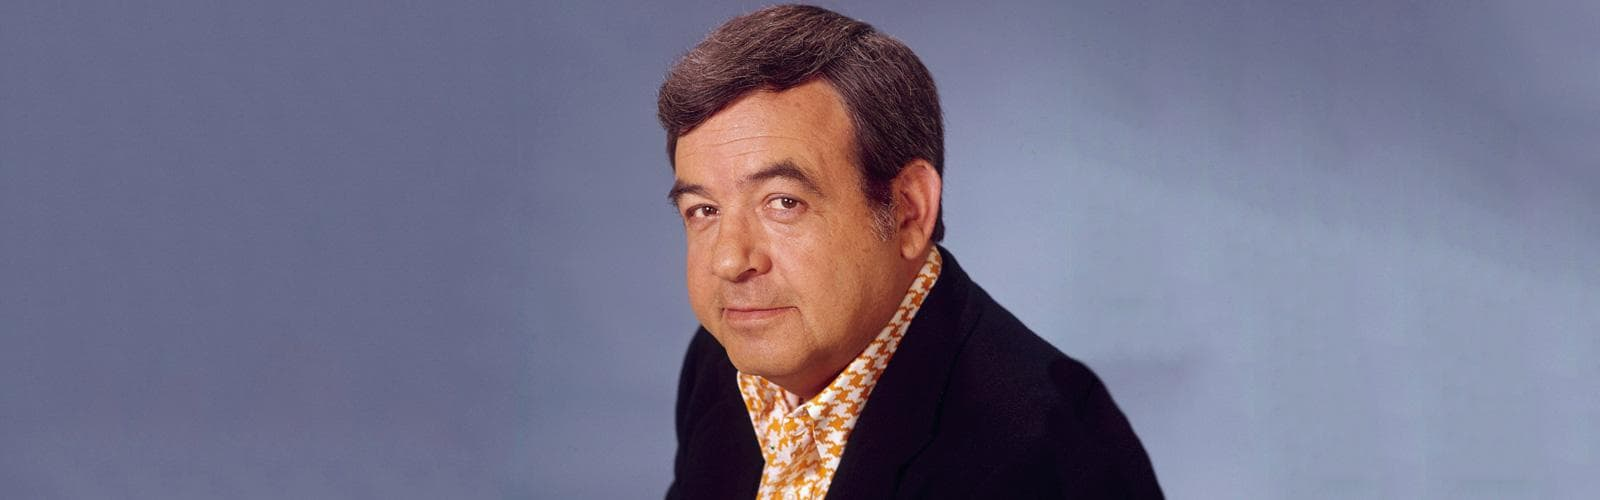 Tom Bosley widescreen wallpapers